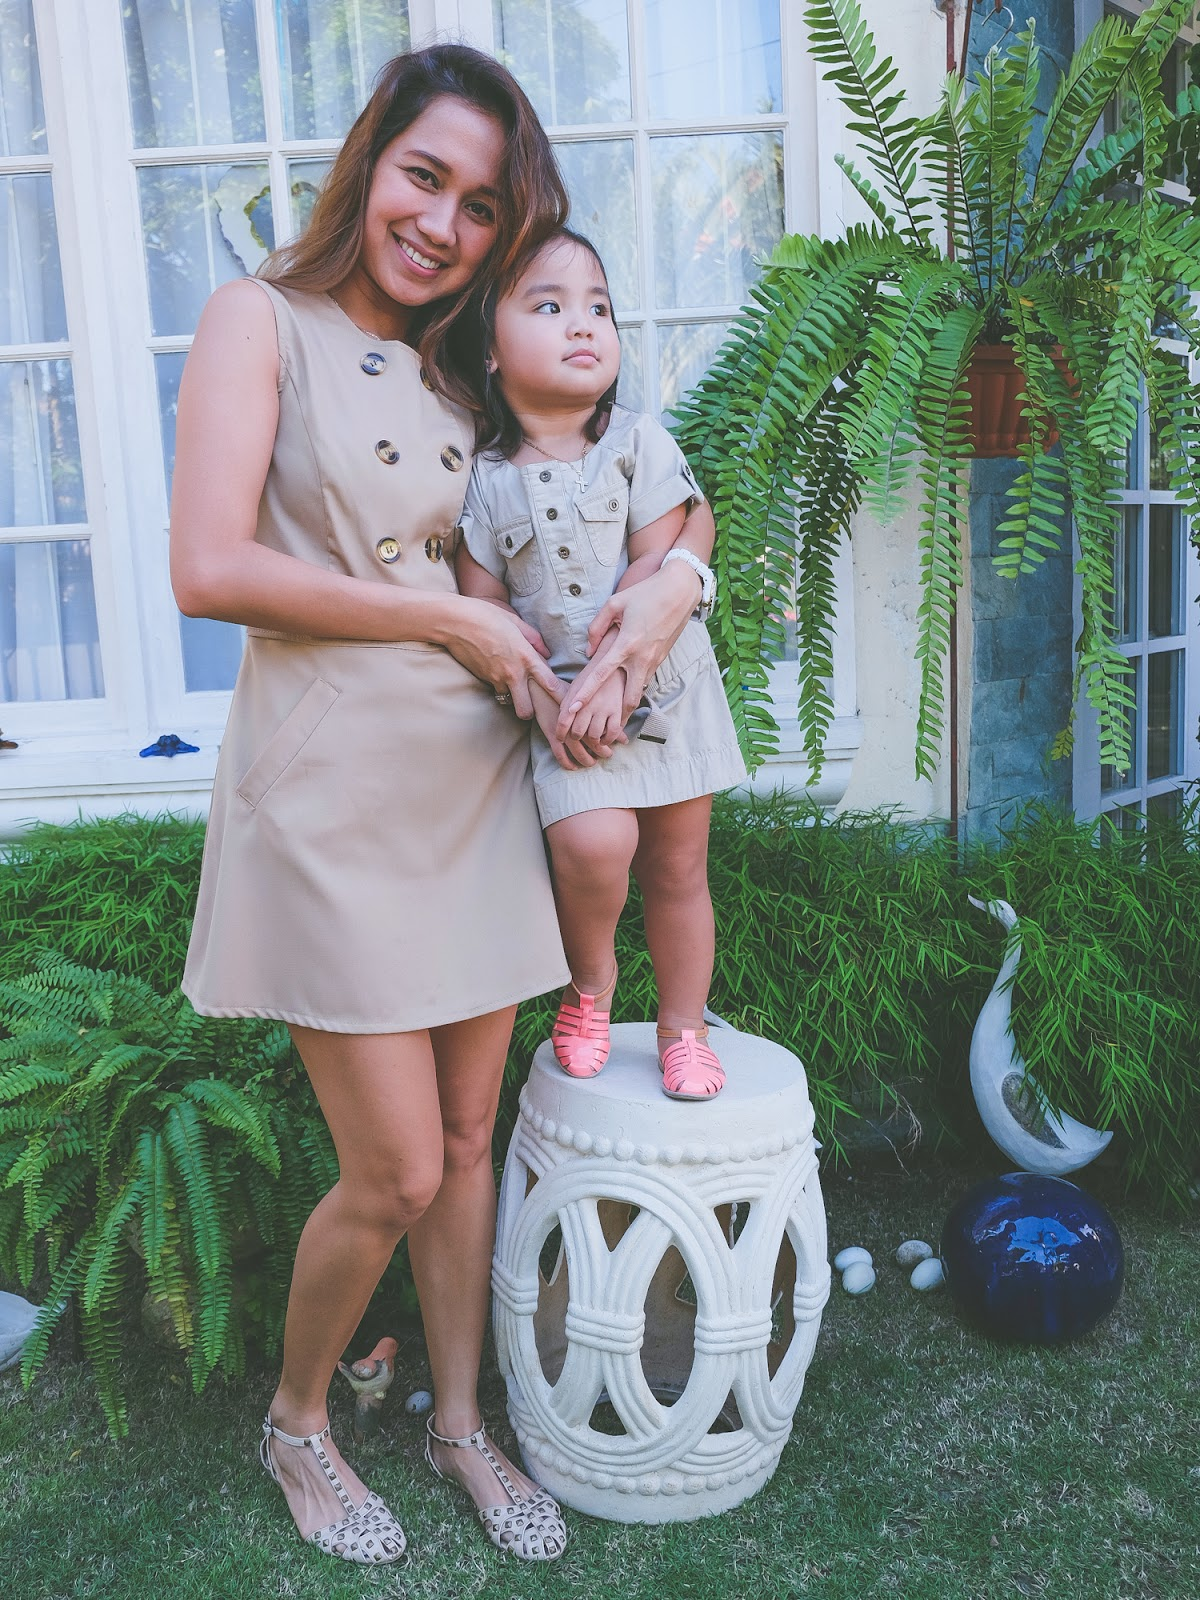 Twinning with mom, Mommy and daughter duo, matching outfits, twinning, cebu fashion bloggers, cebu bloggers, cebu mommy blogger, mommy blogs, philippine mommy blogger, mommy fashion, mommy outfits, summer outfits, cebu lifestyle blogger